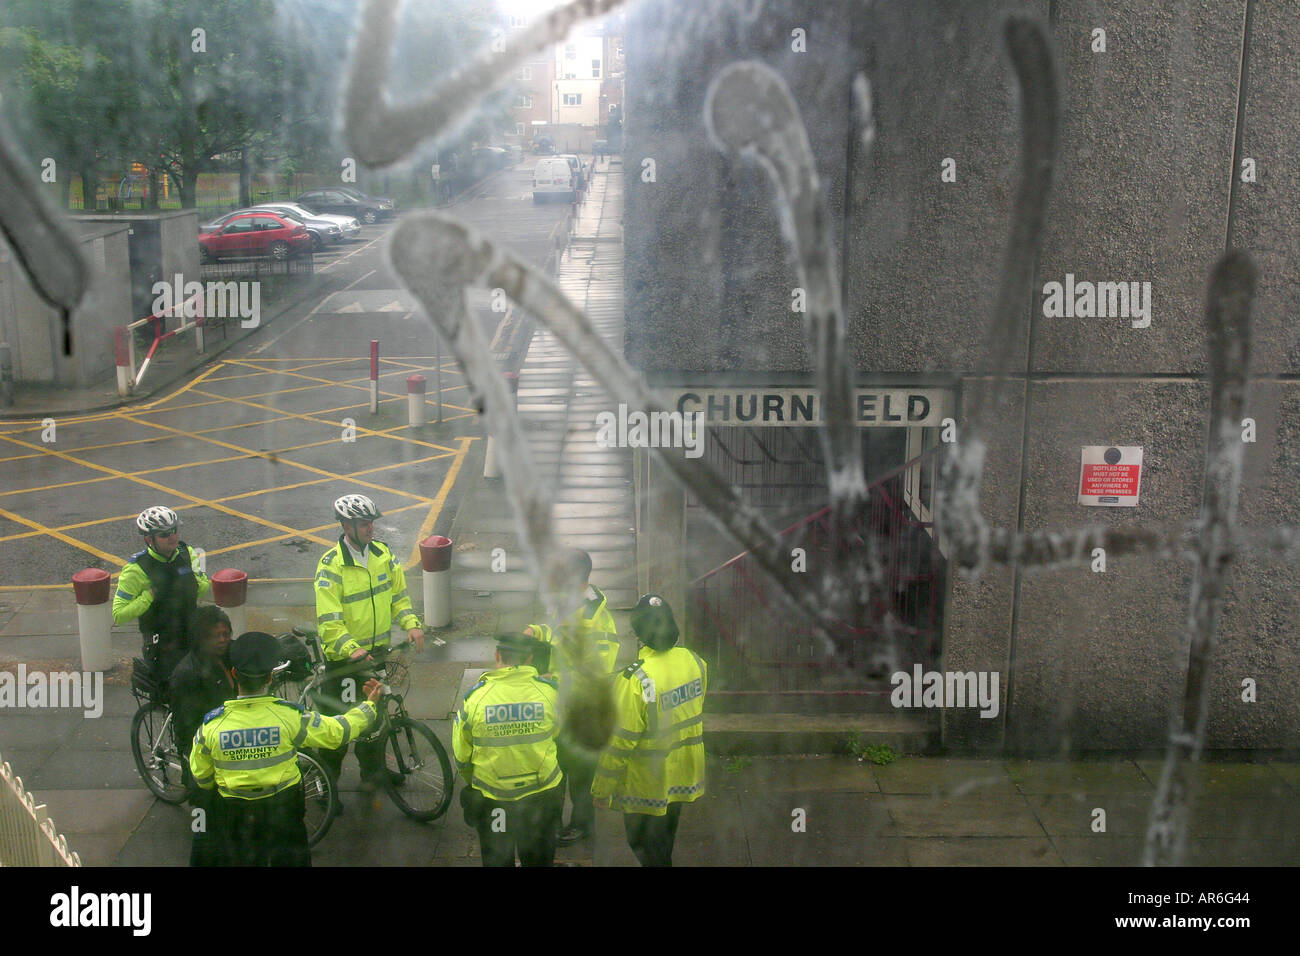 Police meet to patrol an anti-social behaviour exclusion zone on a housing estate, Finsbury Park, London, uk. - Stock Image